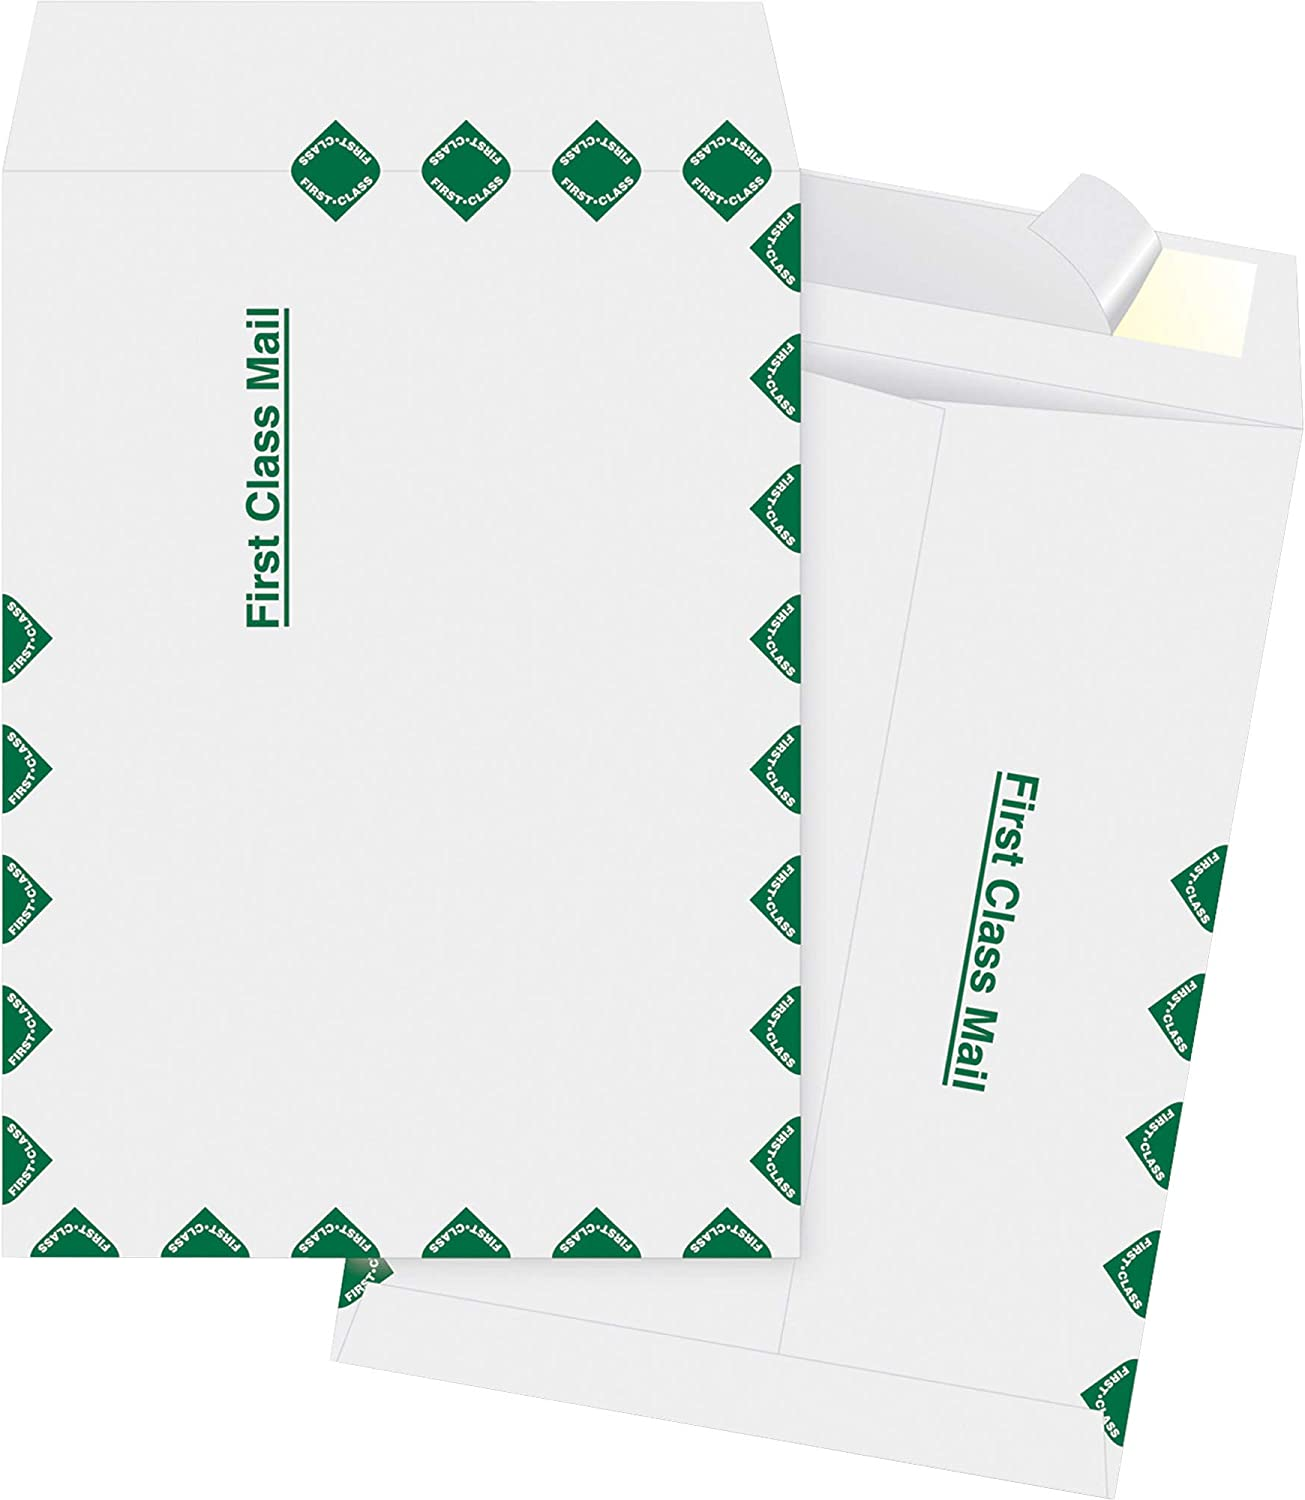 Amazon Com Business Source Dupont Tyvek 1st Class Envelopes 12 X 15 5 Inch Office Products